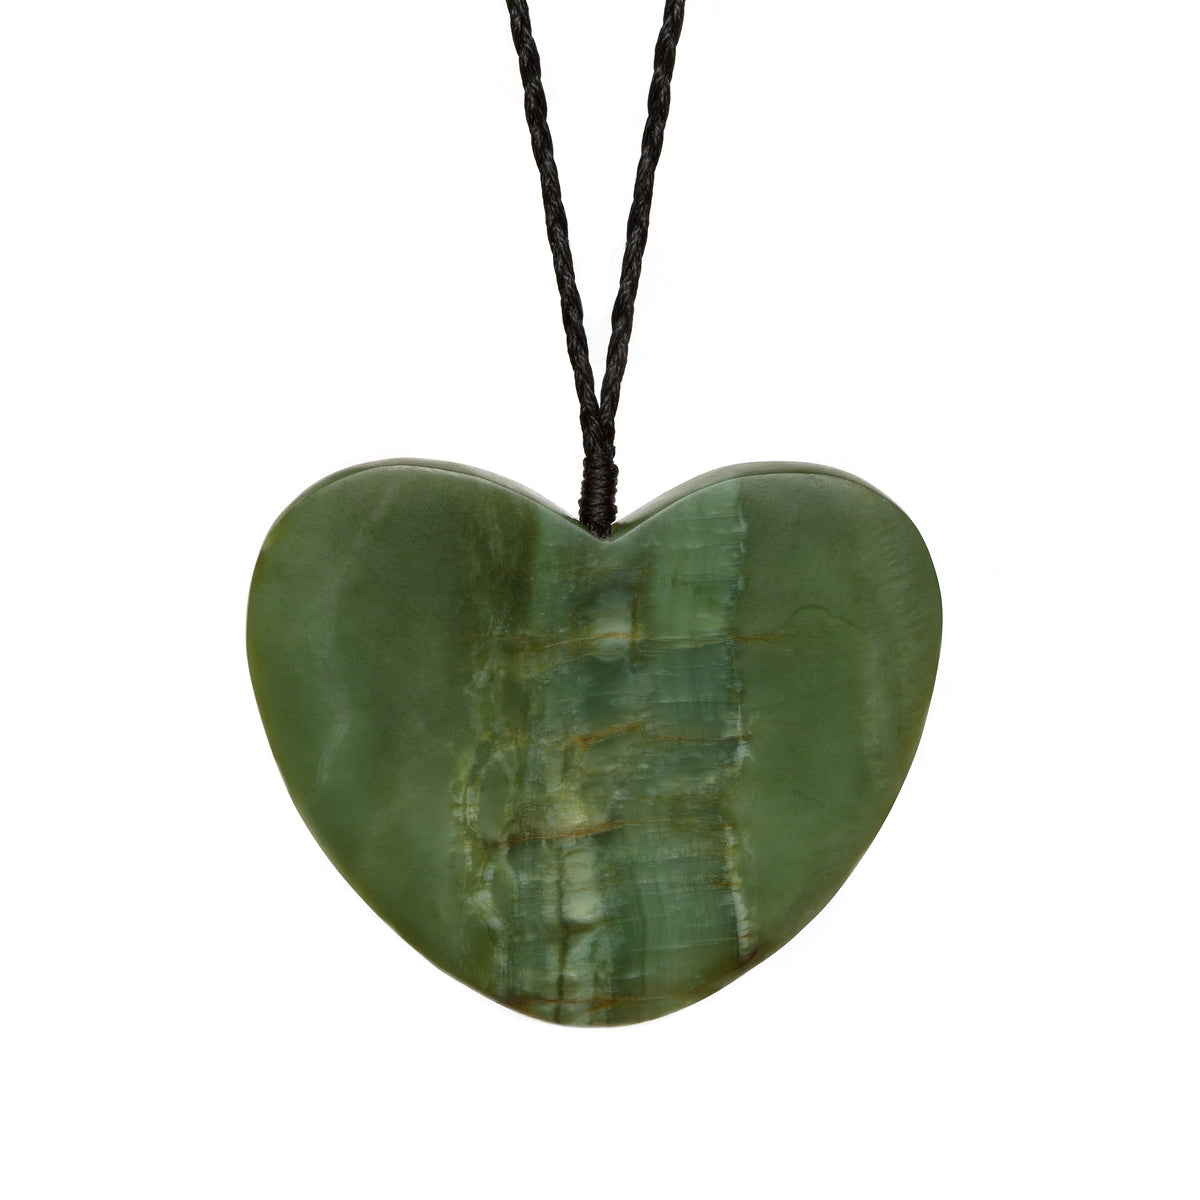 50mm x 61mm / New Zealand Pounamu // TAMAHP398P-1